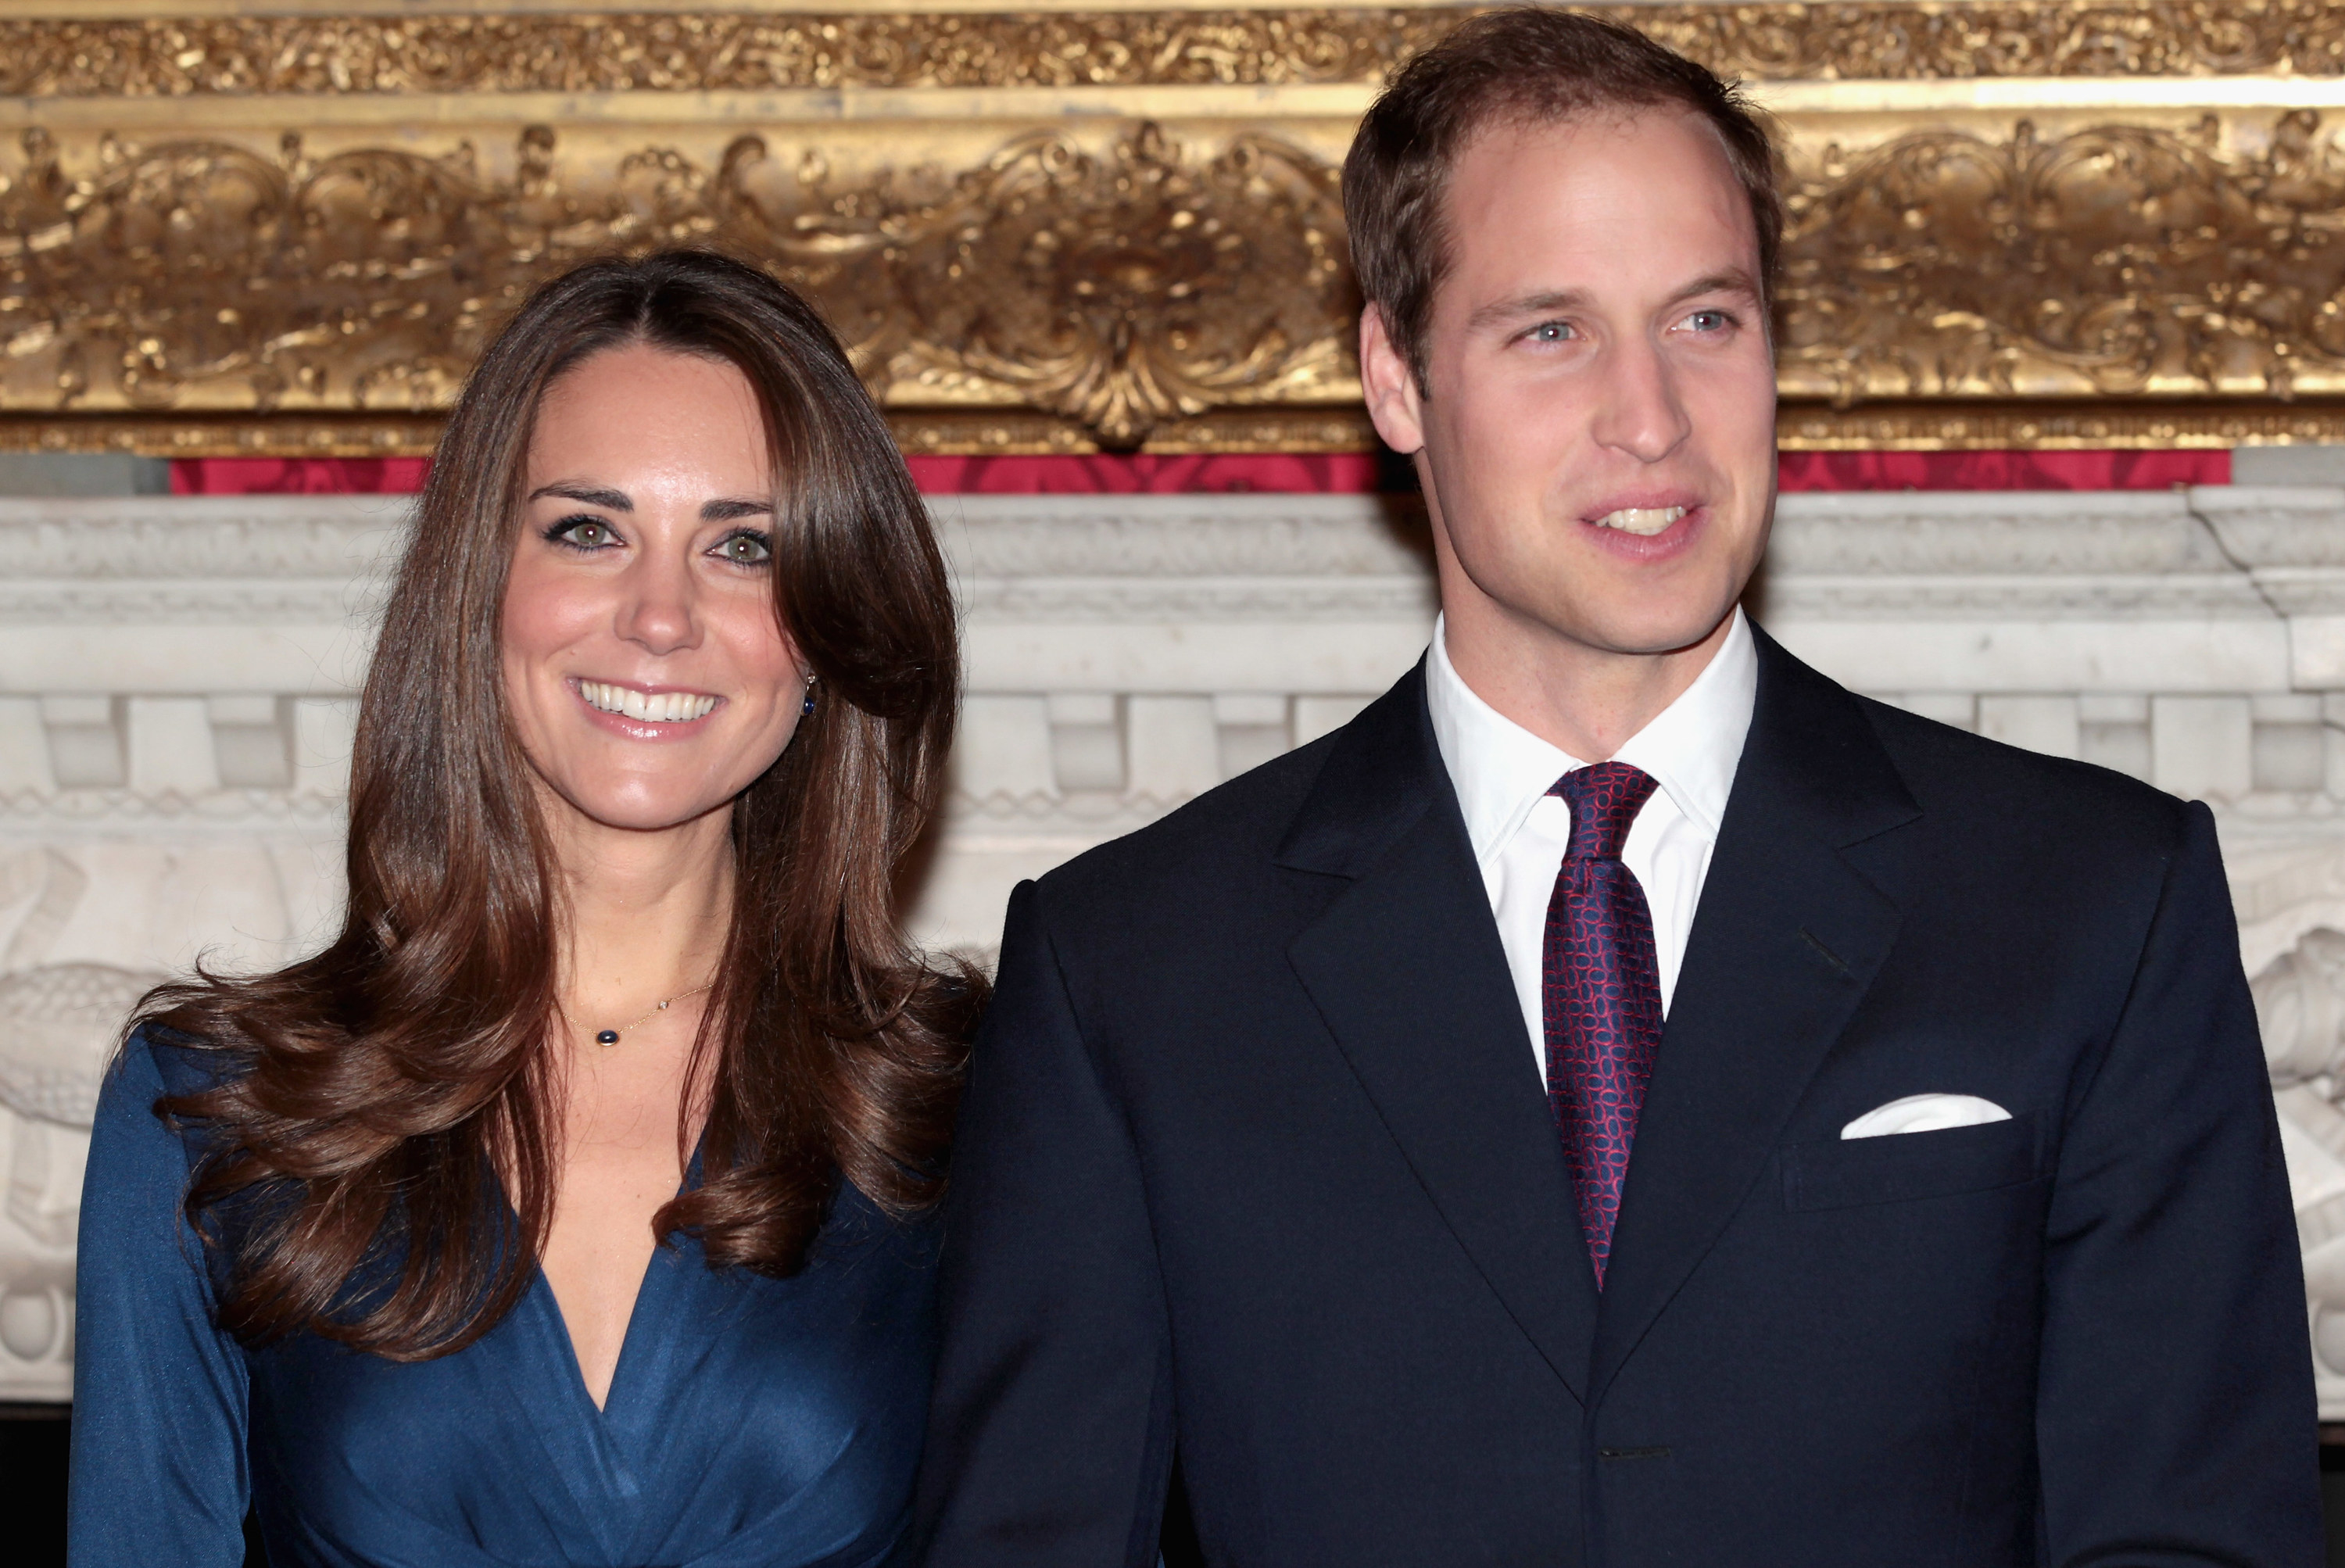 A photo of Kate and William standing next to each other during their engagement press conference